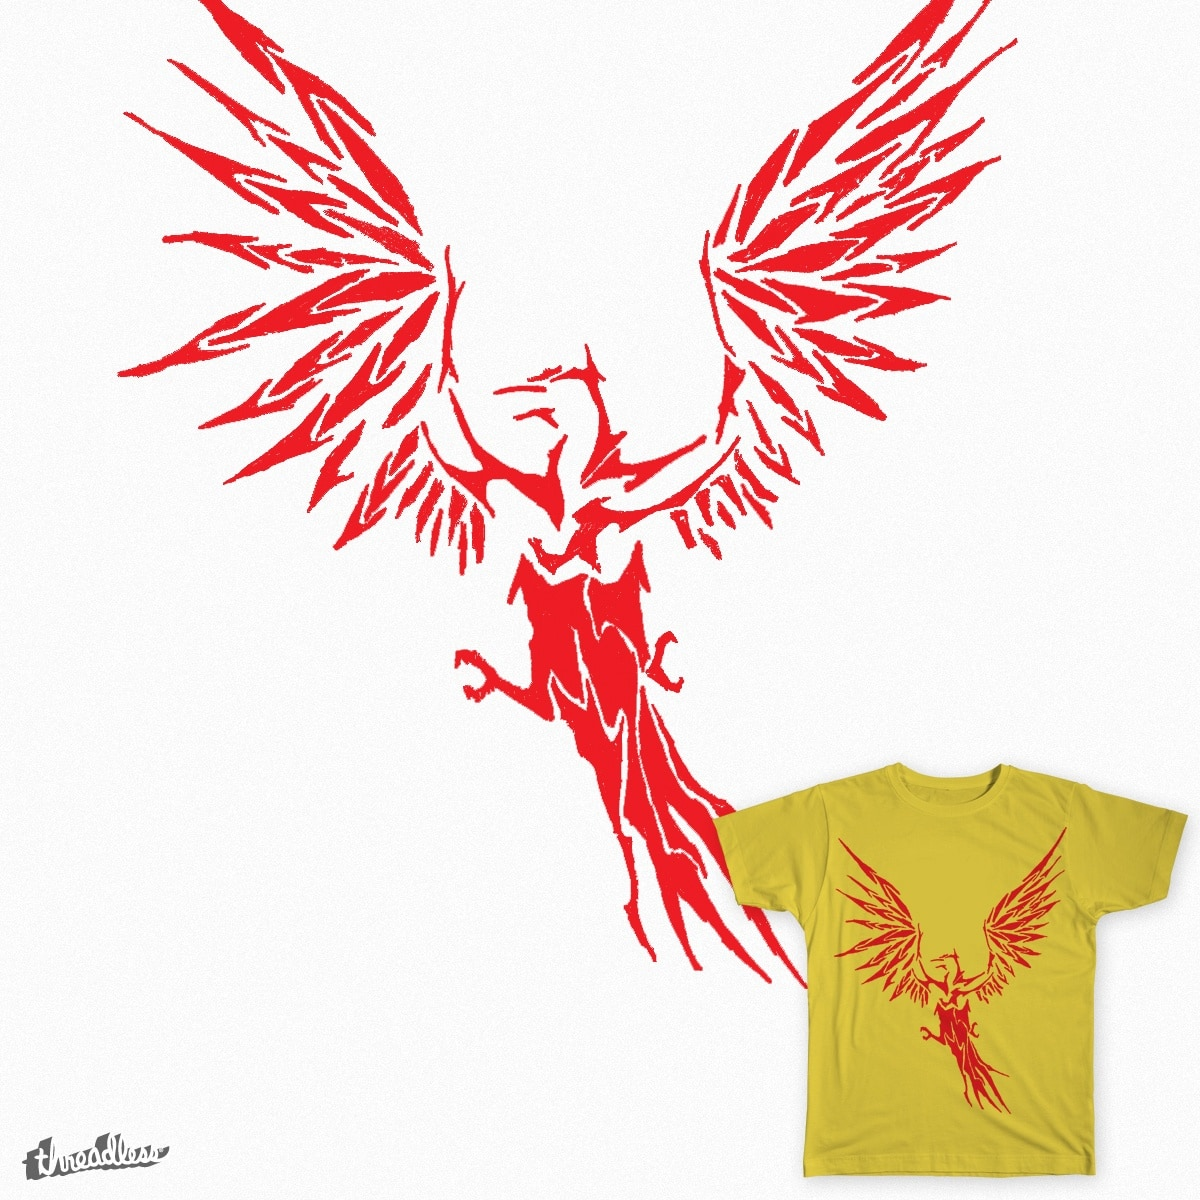 landing flame  by maxomis on Threadless